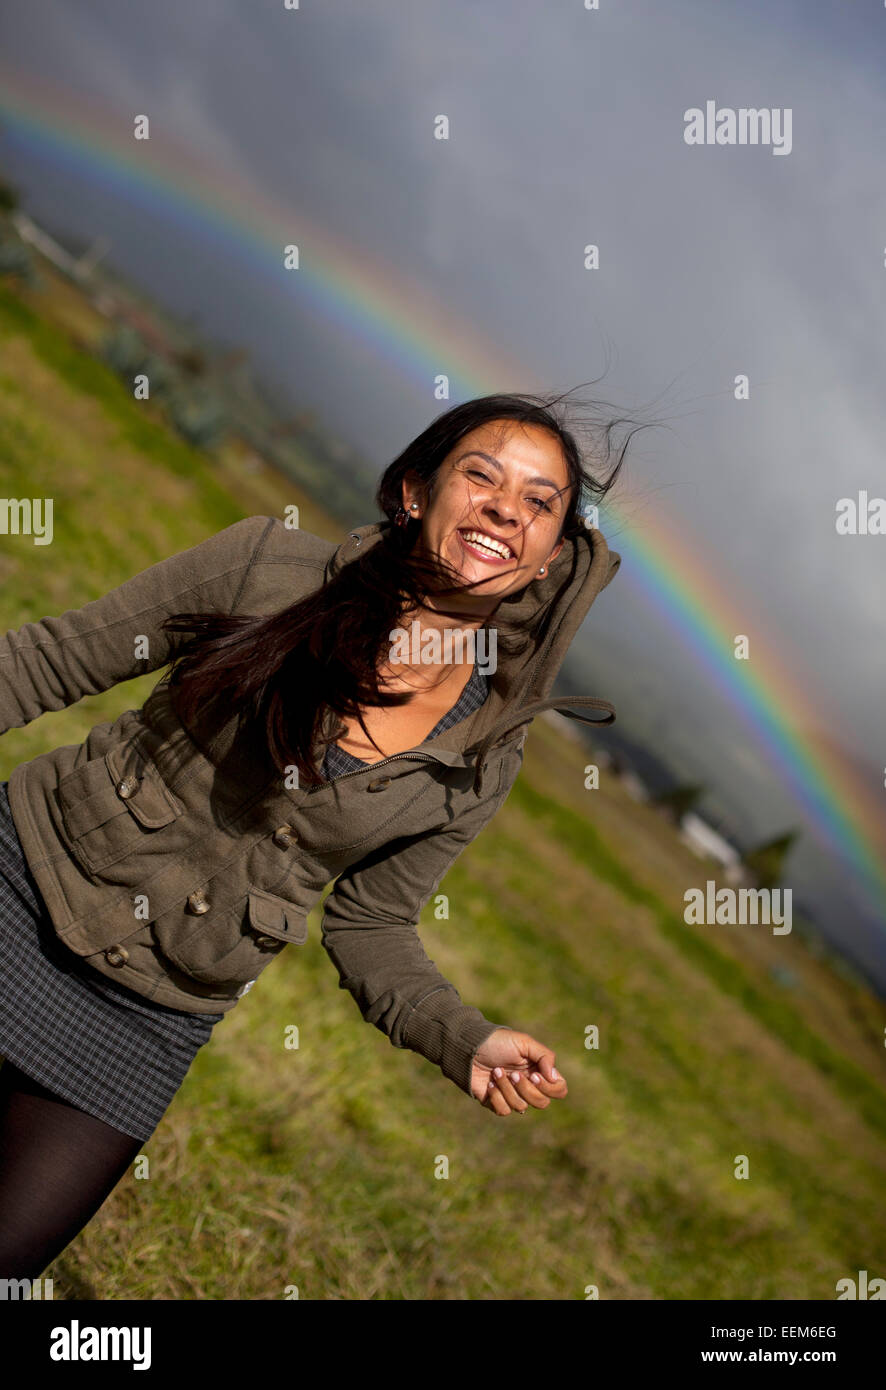 Ecuador, Cayambe, Smiling woman with rainbow in background, Cayambe, Ecuador - Stock Image